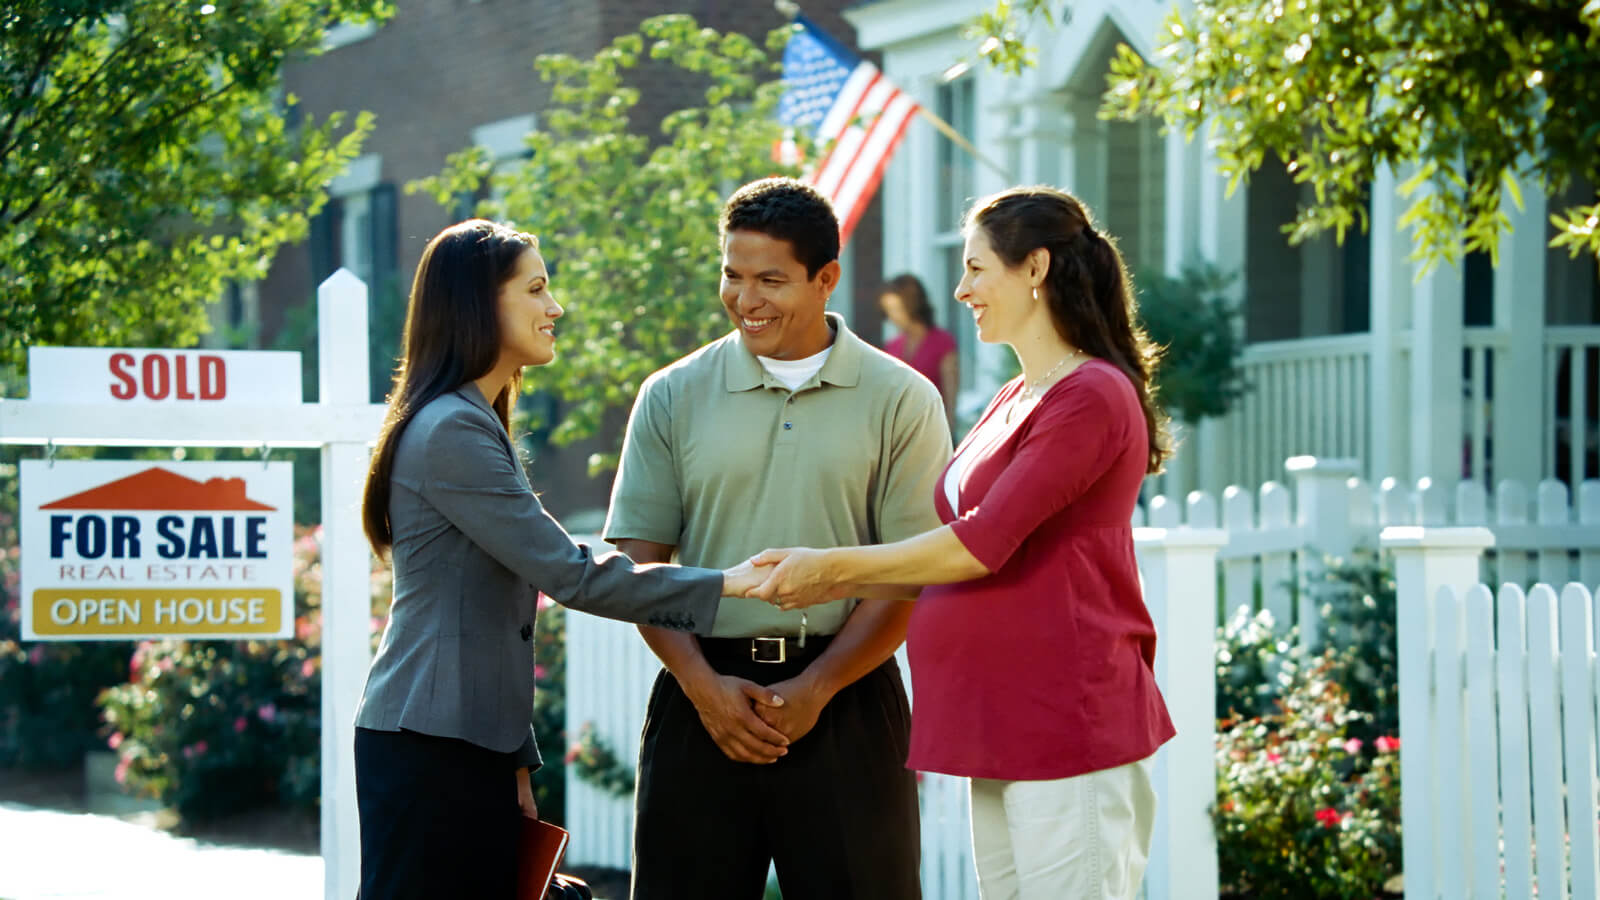 Real State Agent for purchasing a home